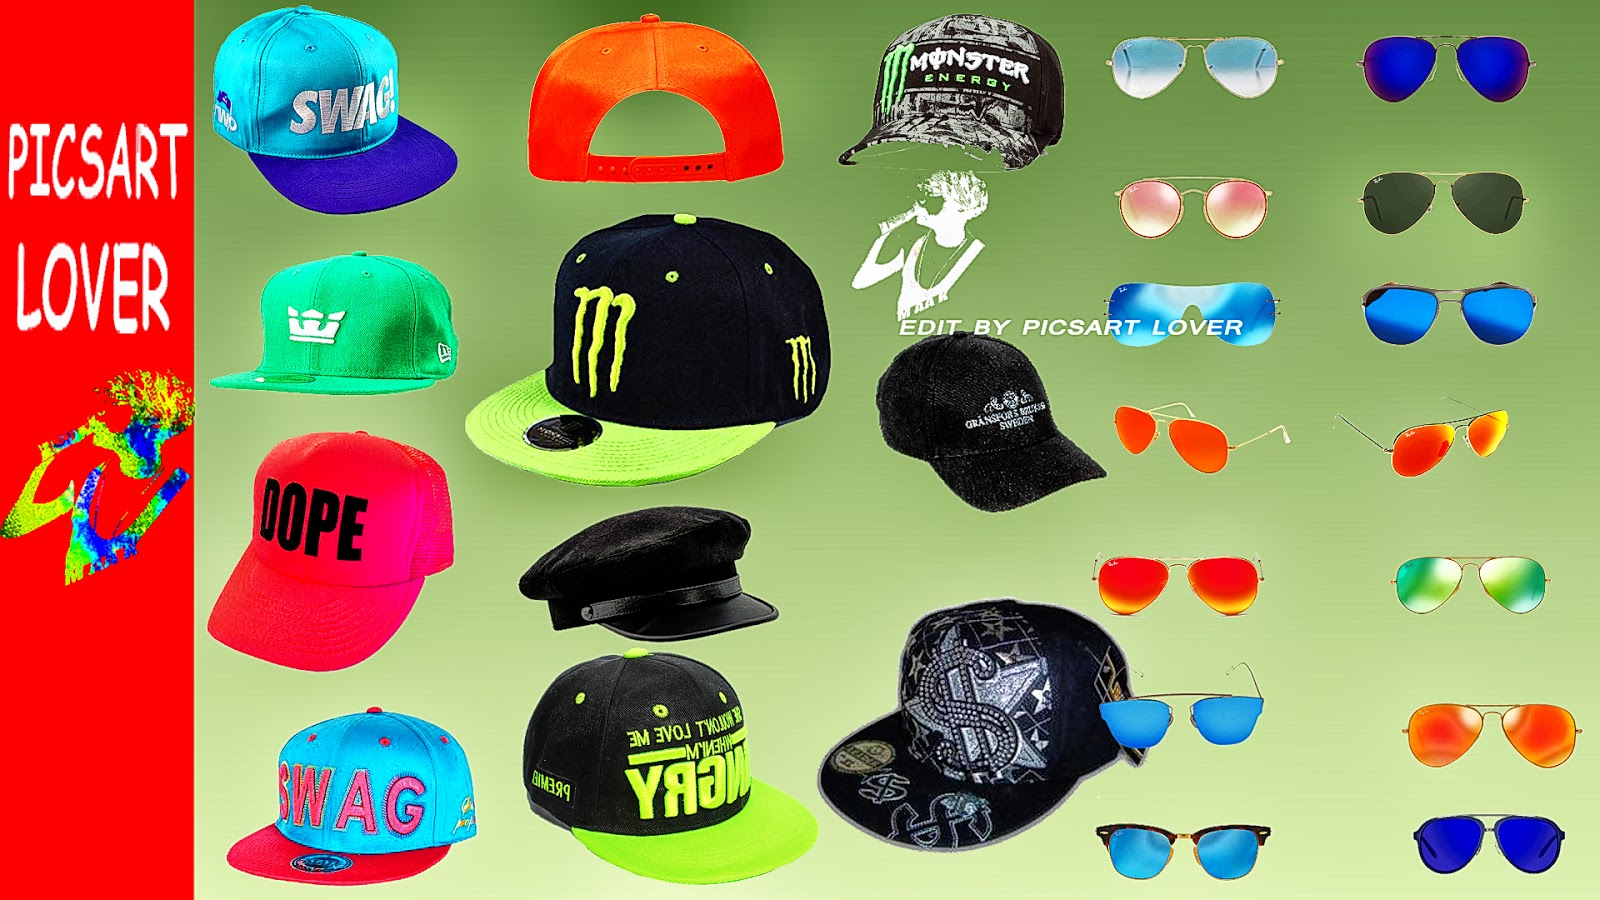 SUNGLASSES AND PNG CAP DOWNLOAD